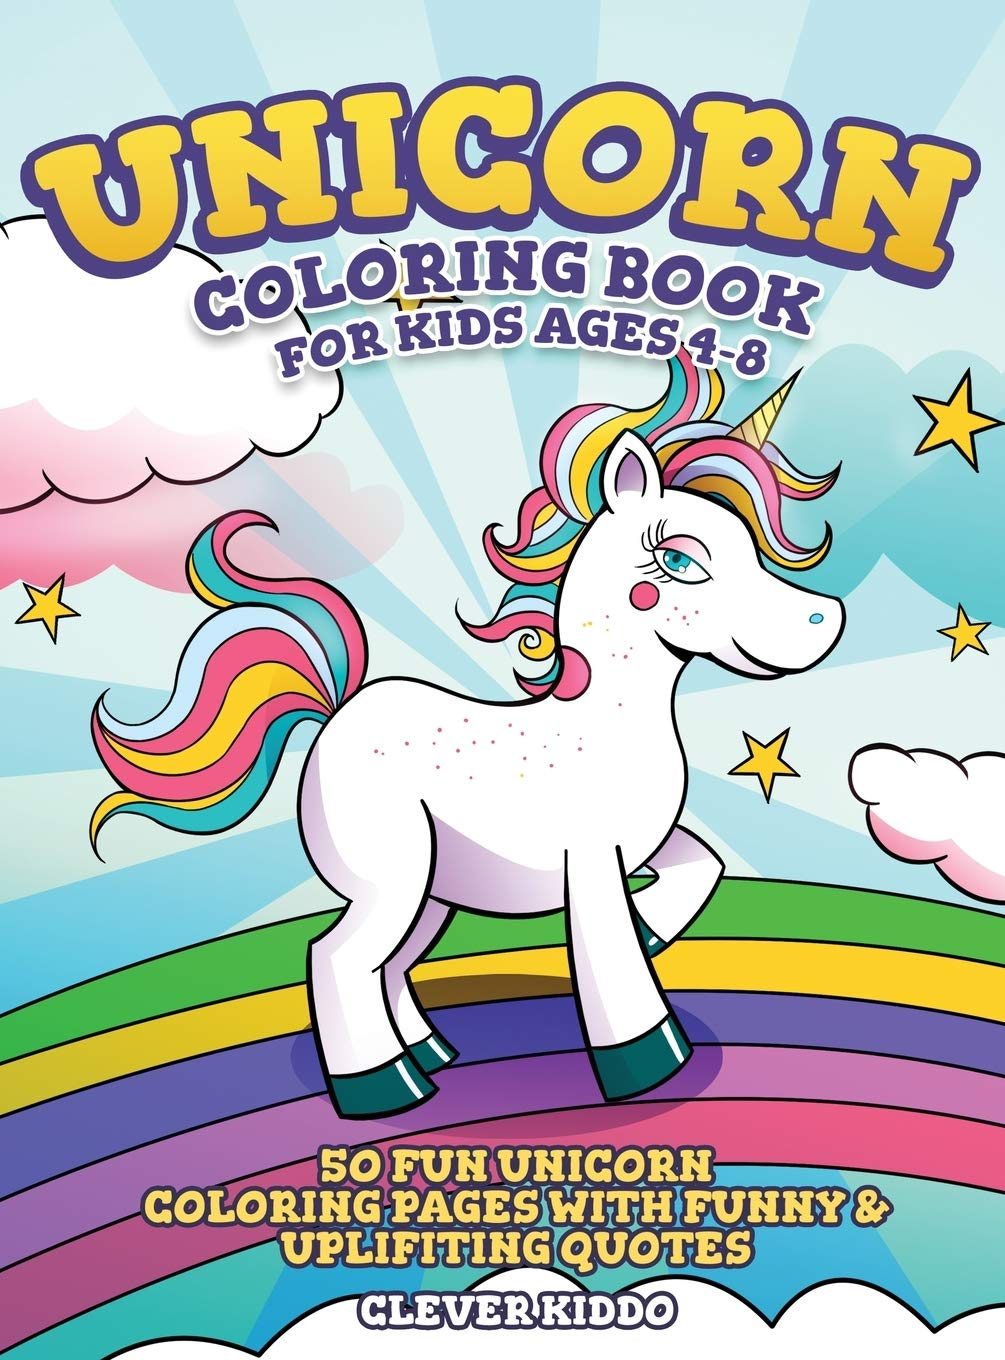 Unicorn Coloring Book for Kids Ages 4-8: 50 Fun Unicorn ...